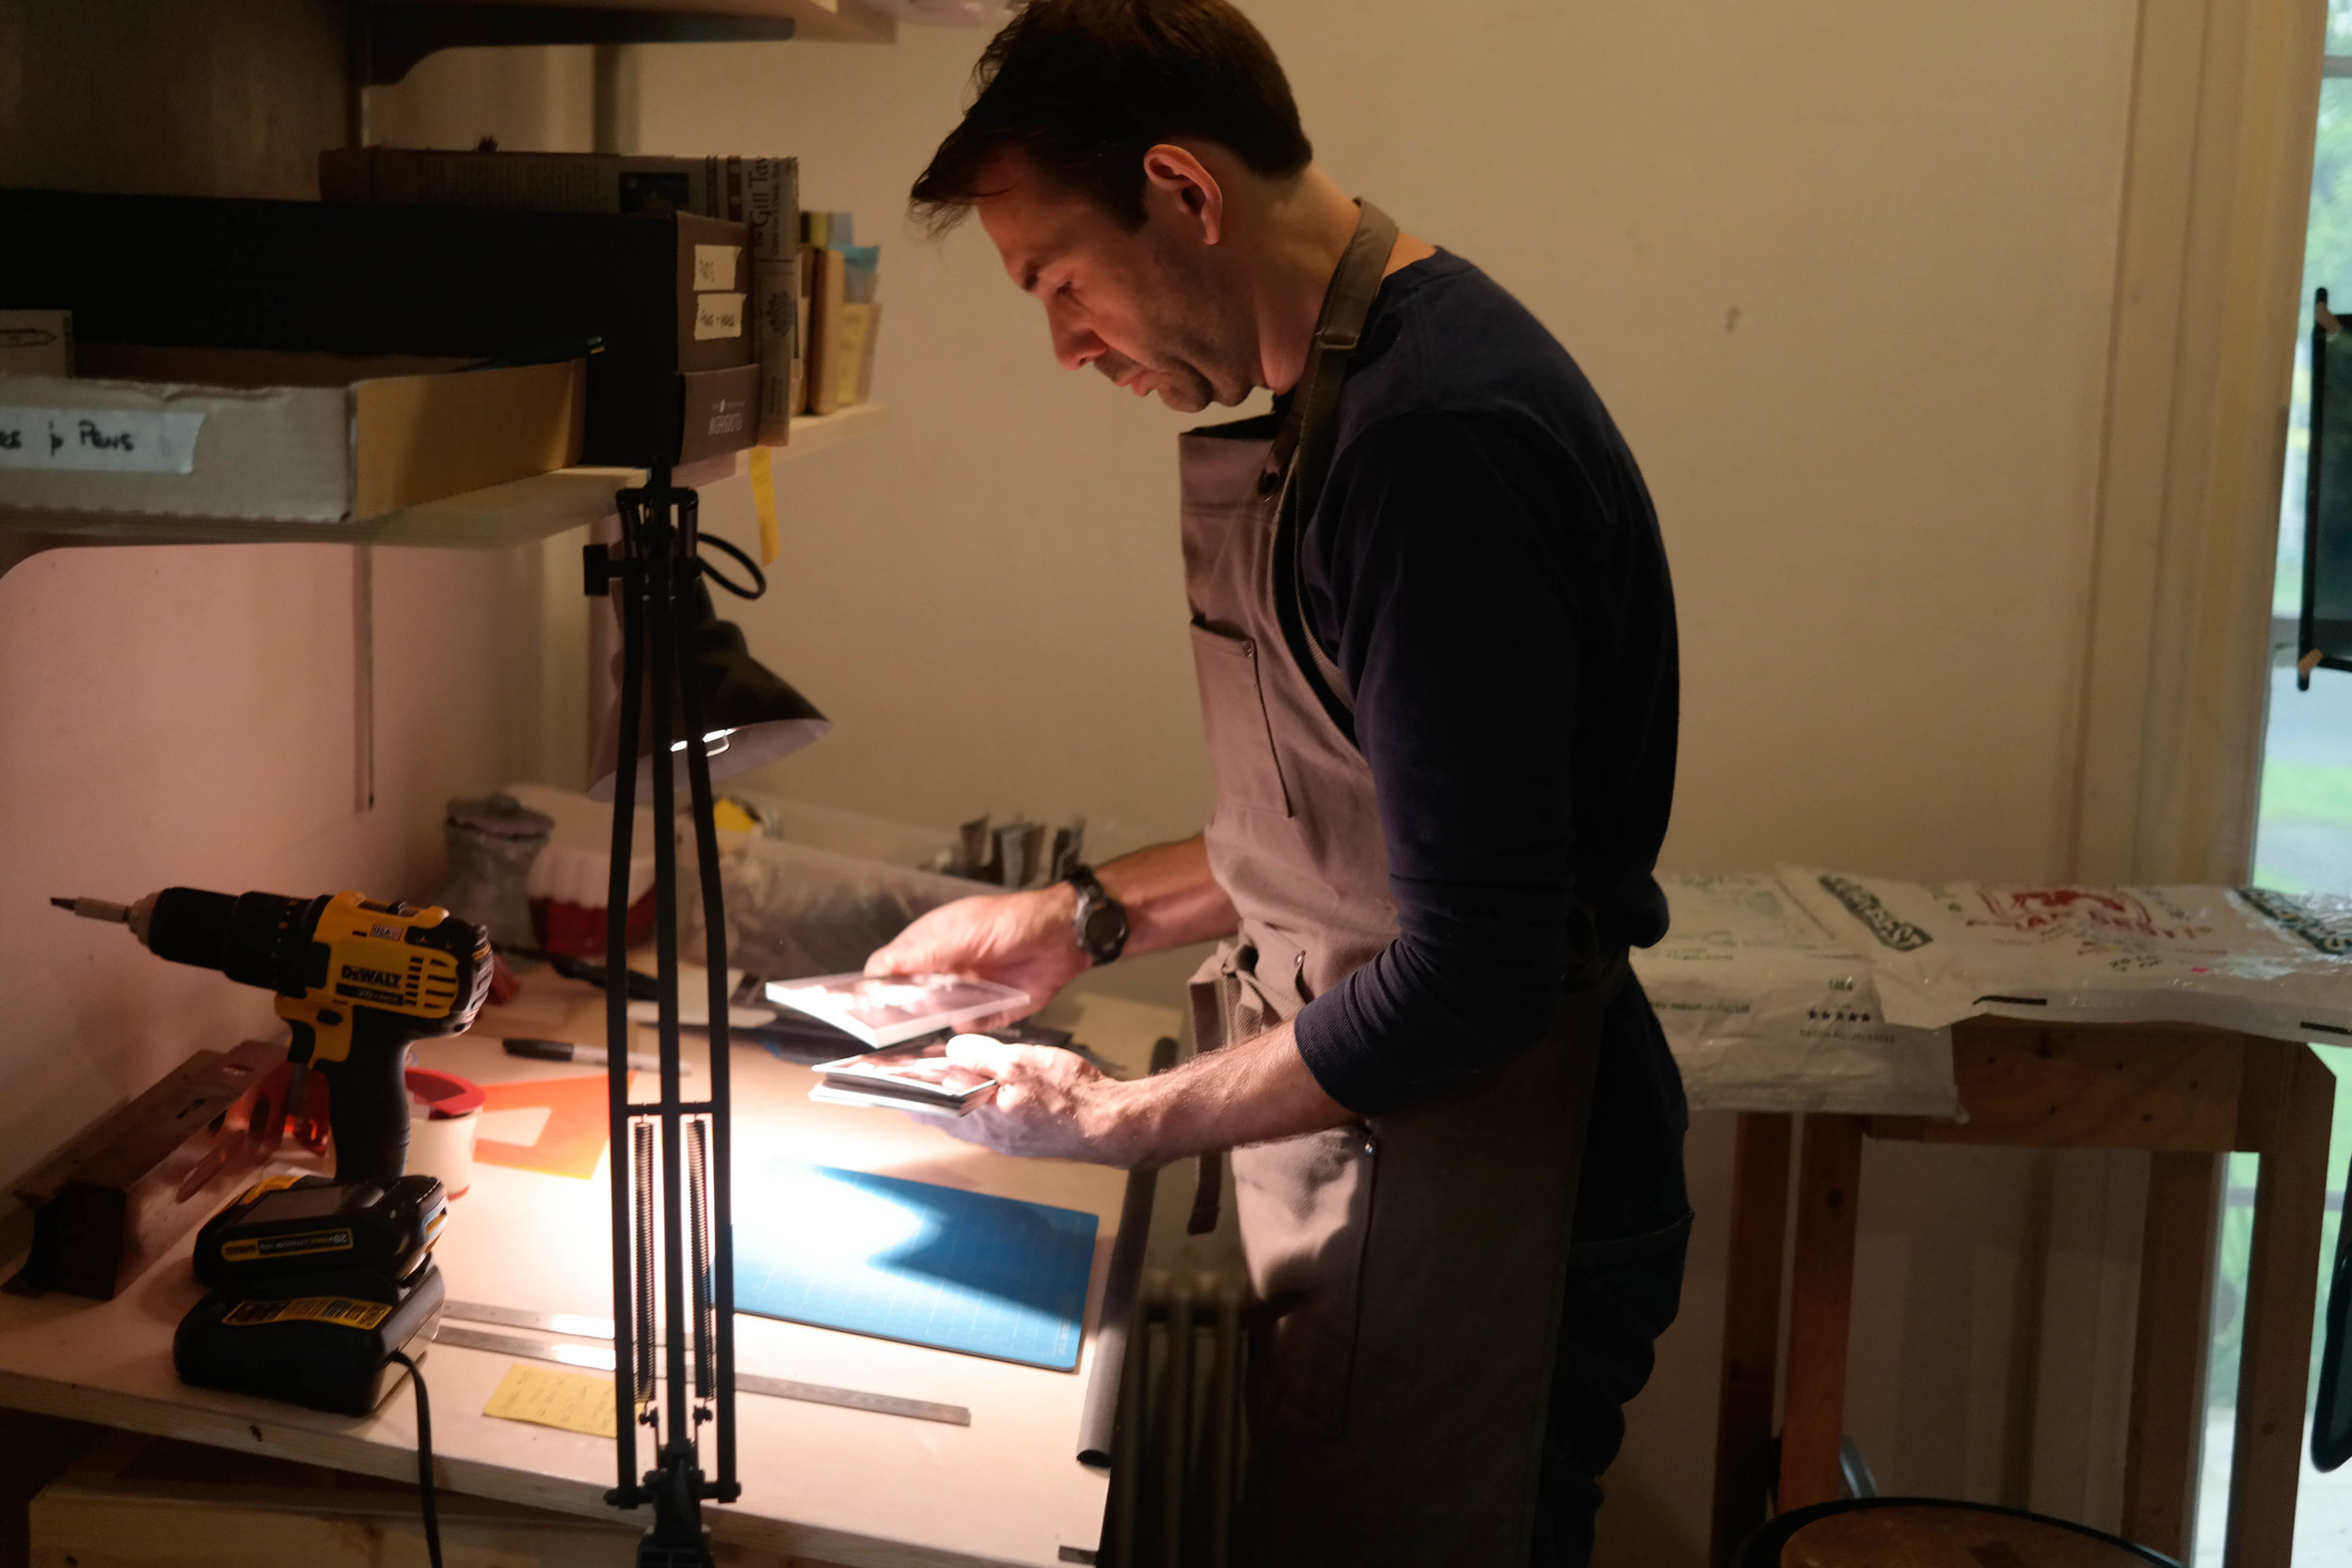 Mishael Coggeshall-Burr in his studio. Photo courtesy of the artist, 2019.